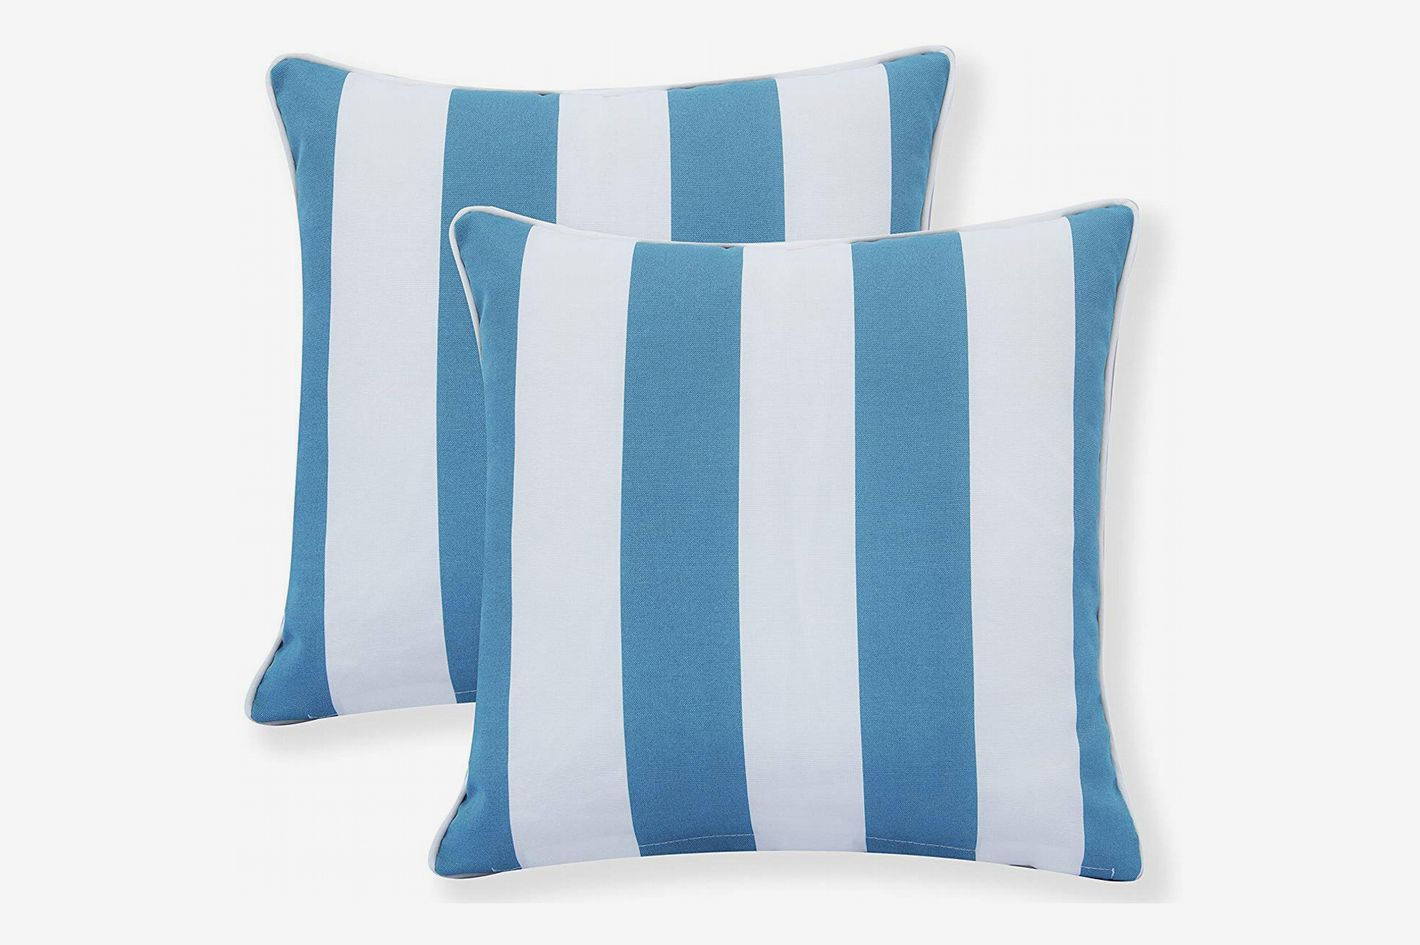 Decor Venue Water Resistant Indoor/Outdoor Square Stripe Throw Pillow